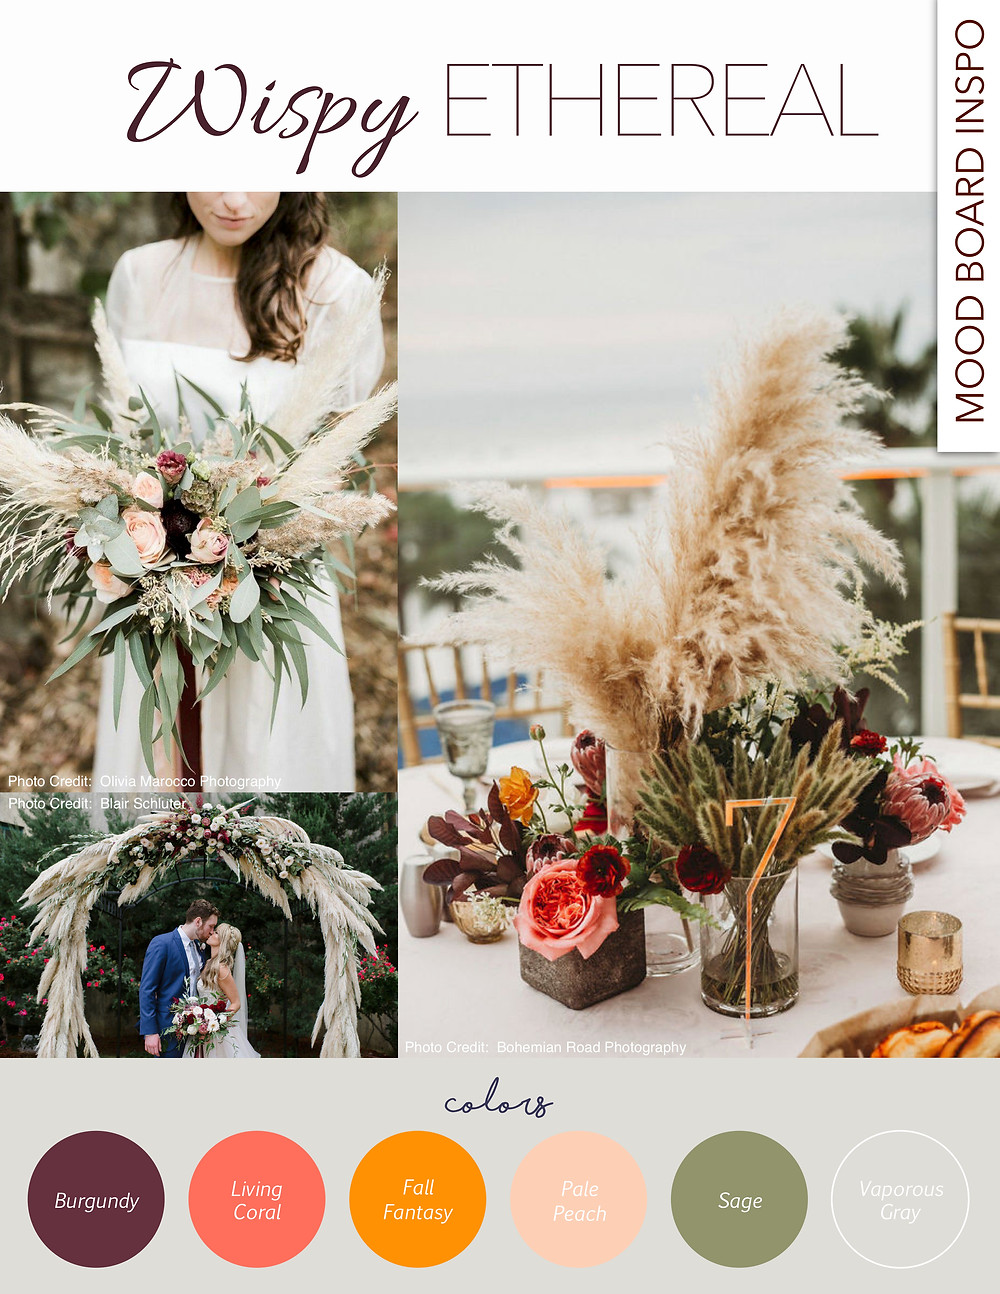 wispy, ethereal, wedding, mood board, coral, burgundy, fall fantasy, peach, sage, gray, grey, arbor, pampas grass, bouquet, tablescape, design, inspiration, blue diamond events, columbia, mo